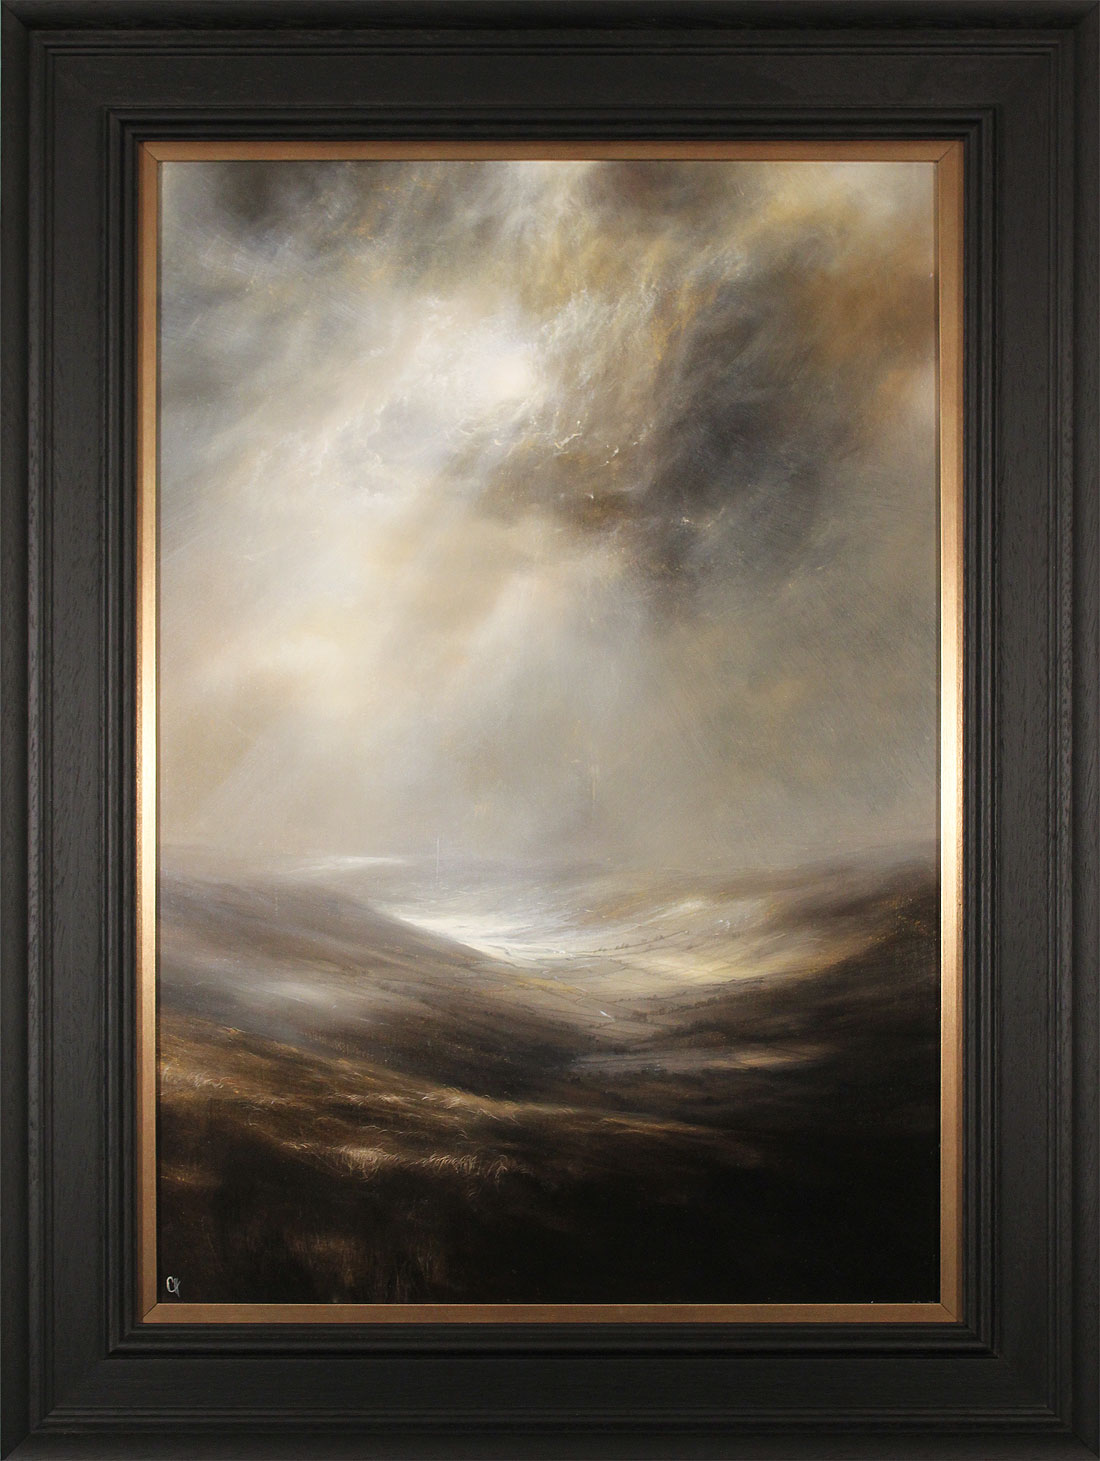 Clare Haley, Original oil painting on panel, North Yorkshire in Umber Tones. Click to enlarge